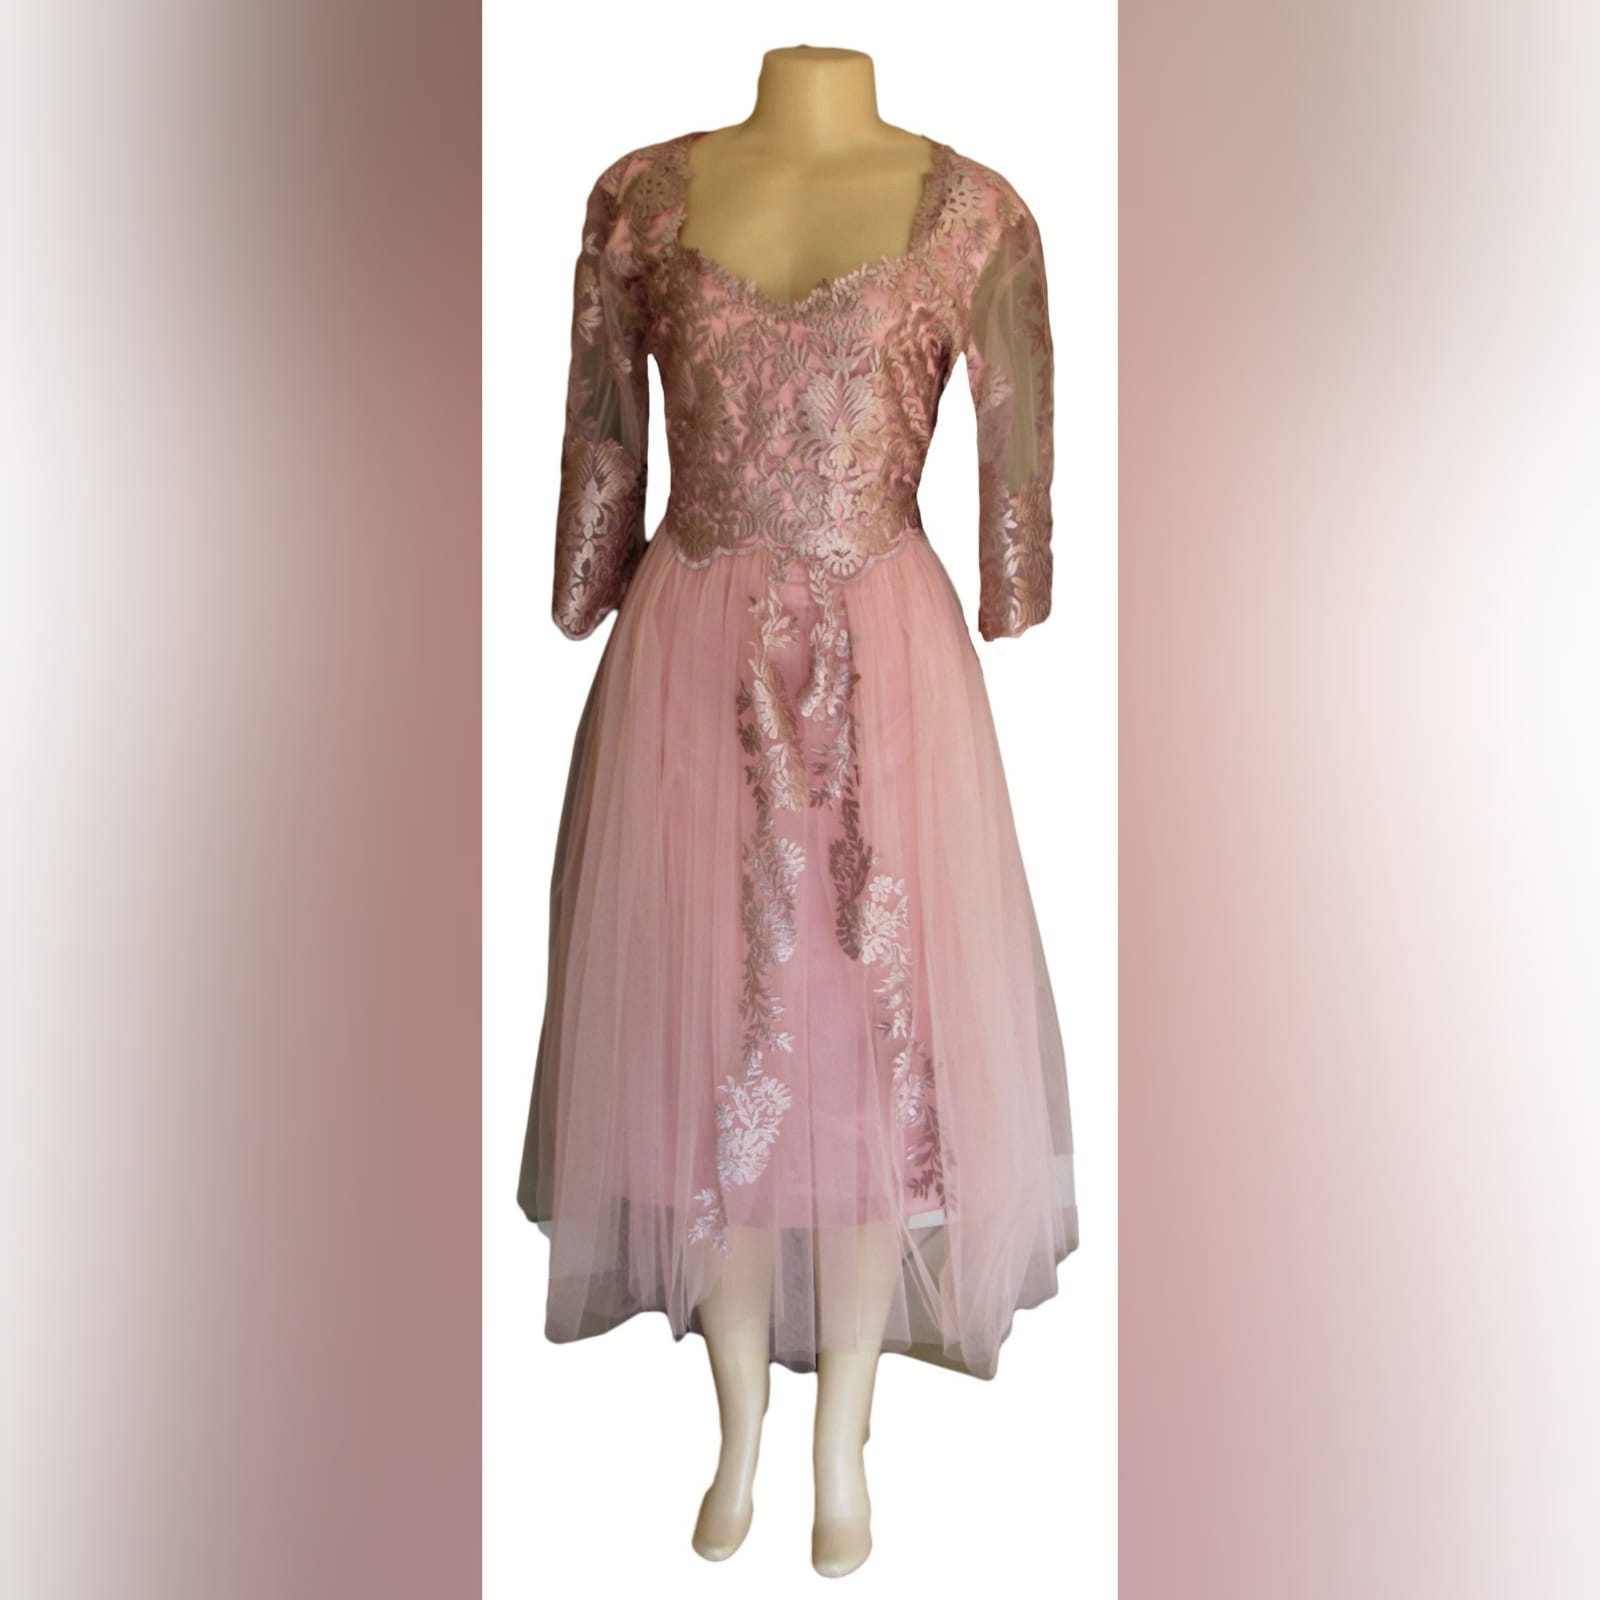 Dusty pink lace and tulle mother of the bride dress 4 dusty pink lace and tulle mother of the bride dress. Knee length with 3/4 sleeves.